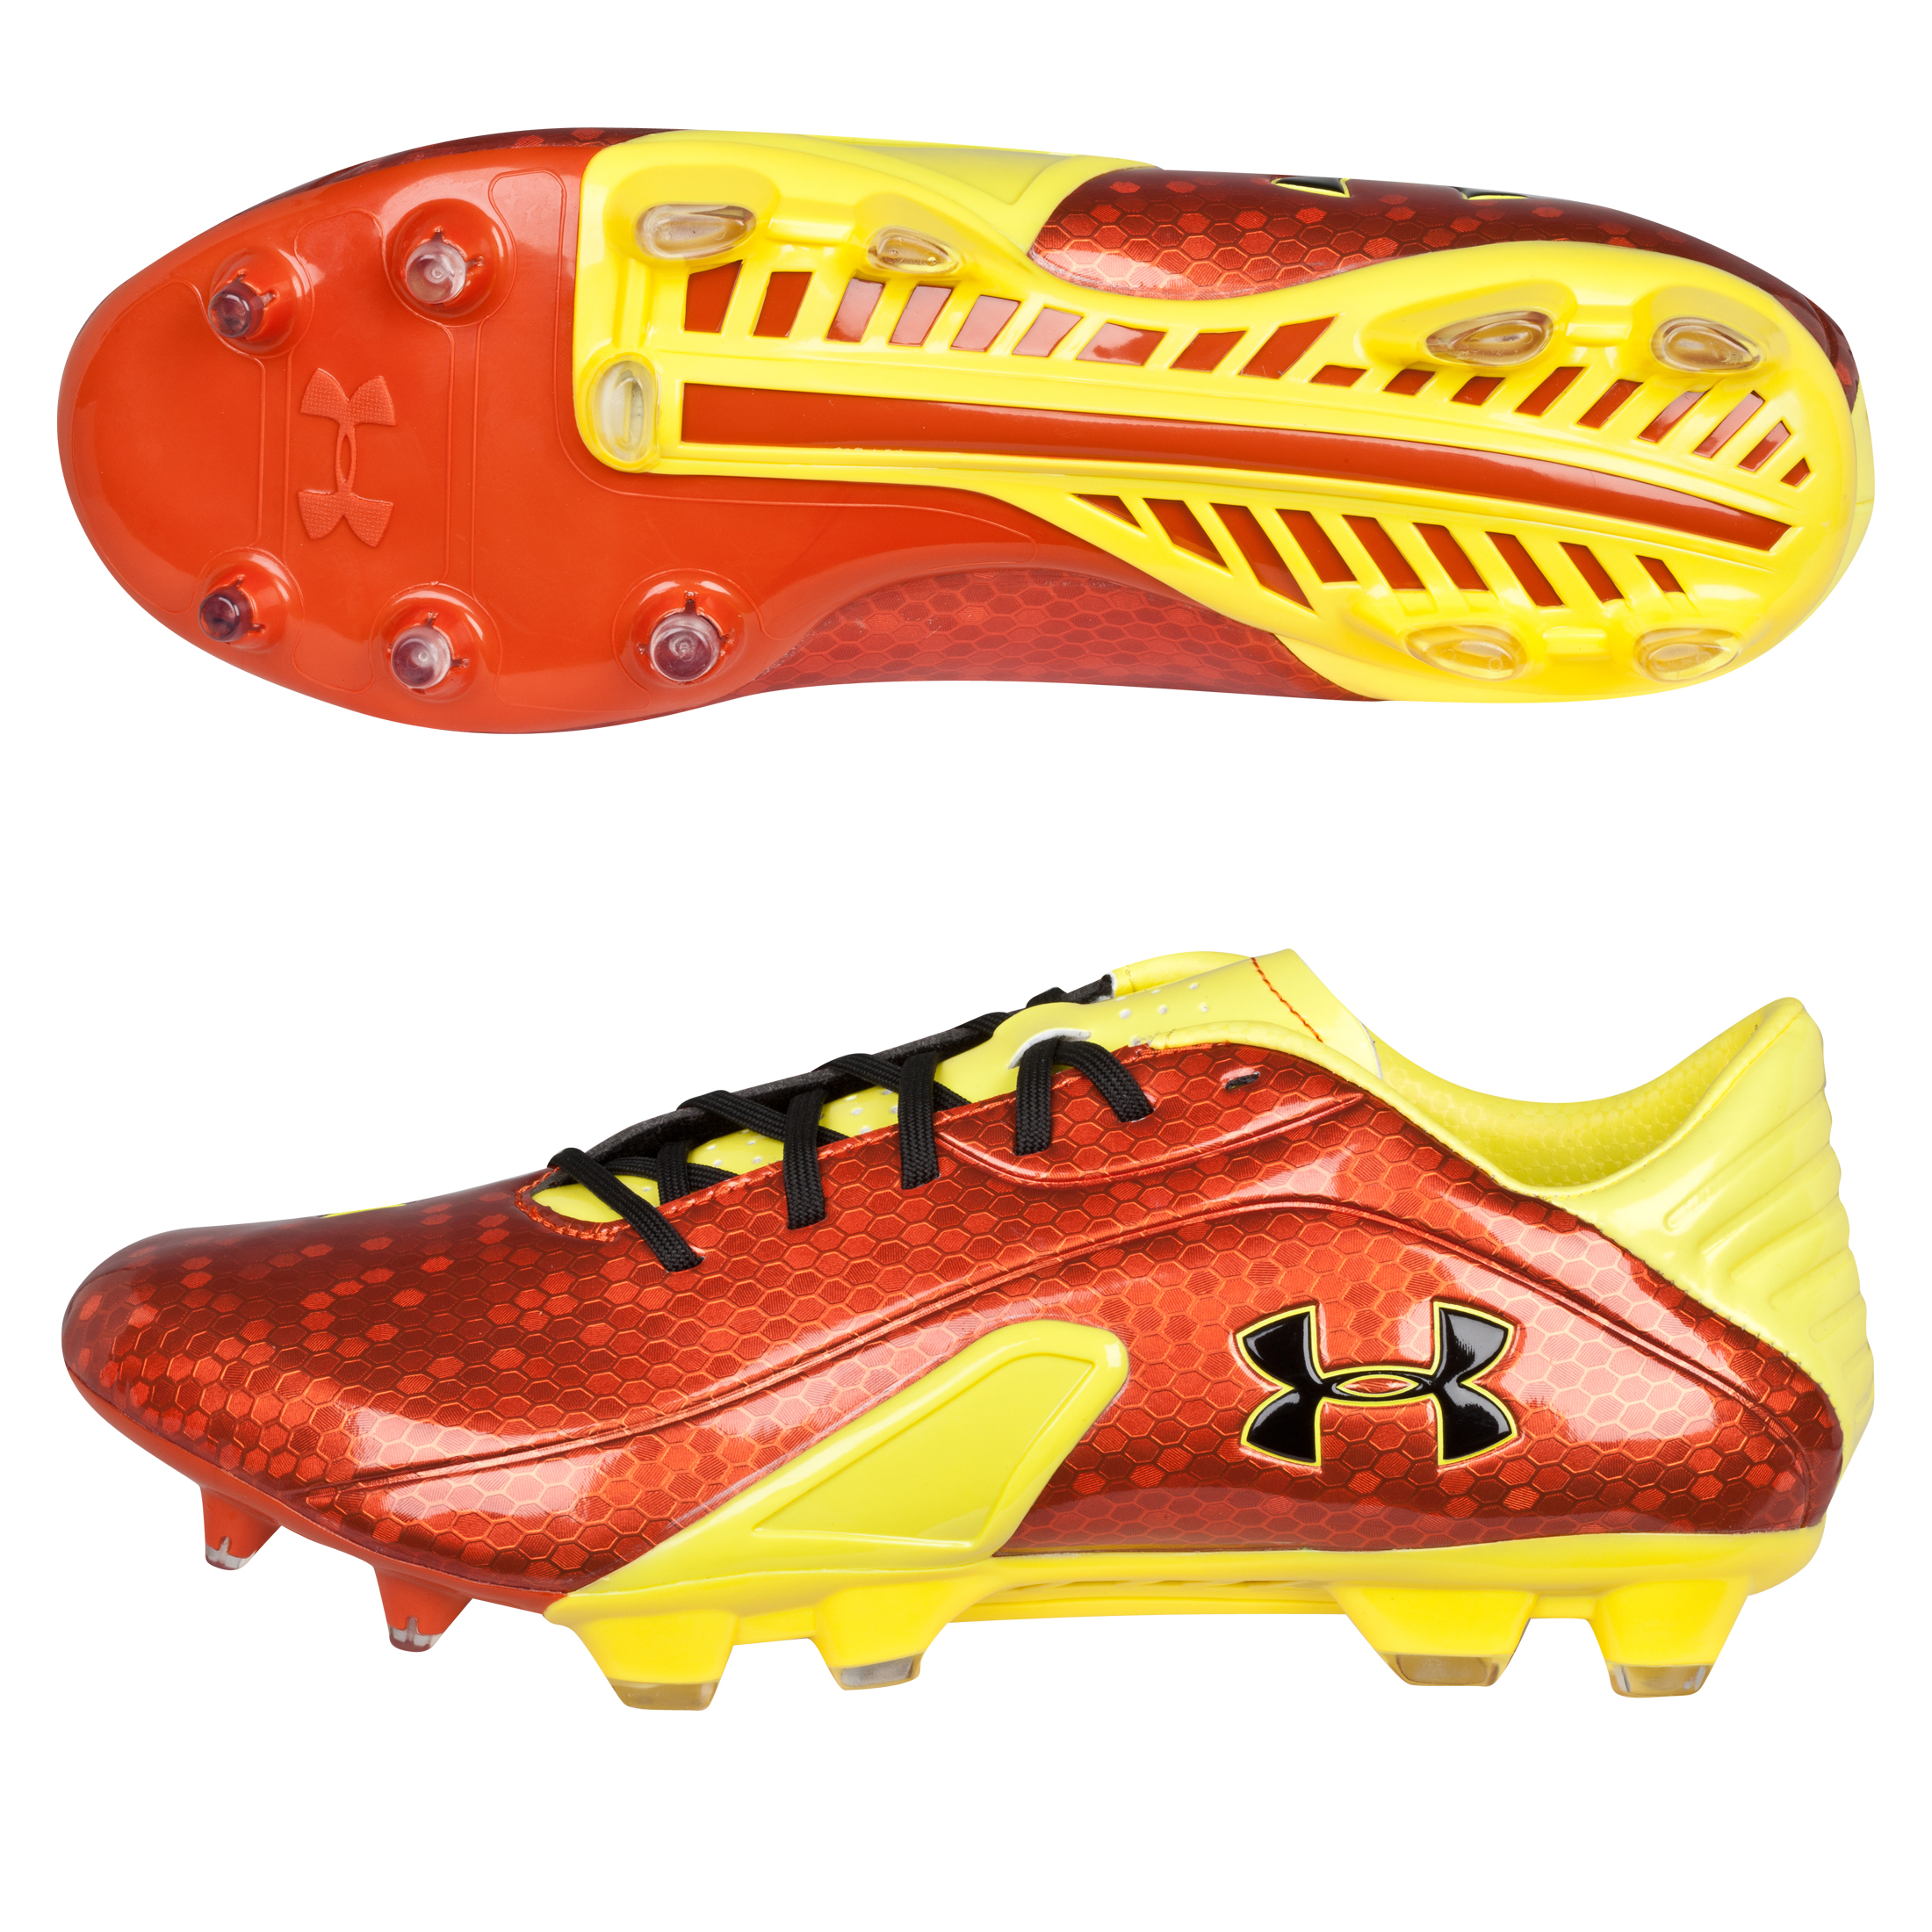 Under Armour Spine Blur Firm Ground Football Boots - Vivid/Sun Bleached/Black